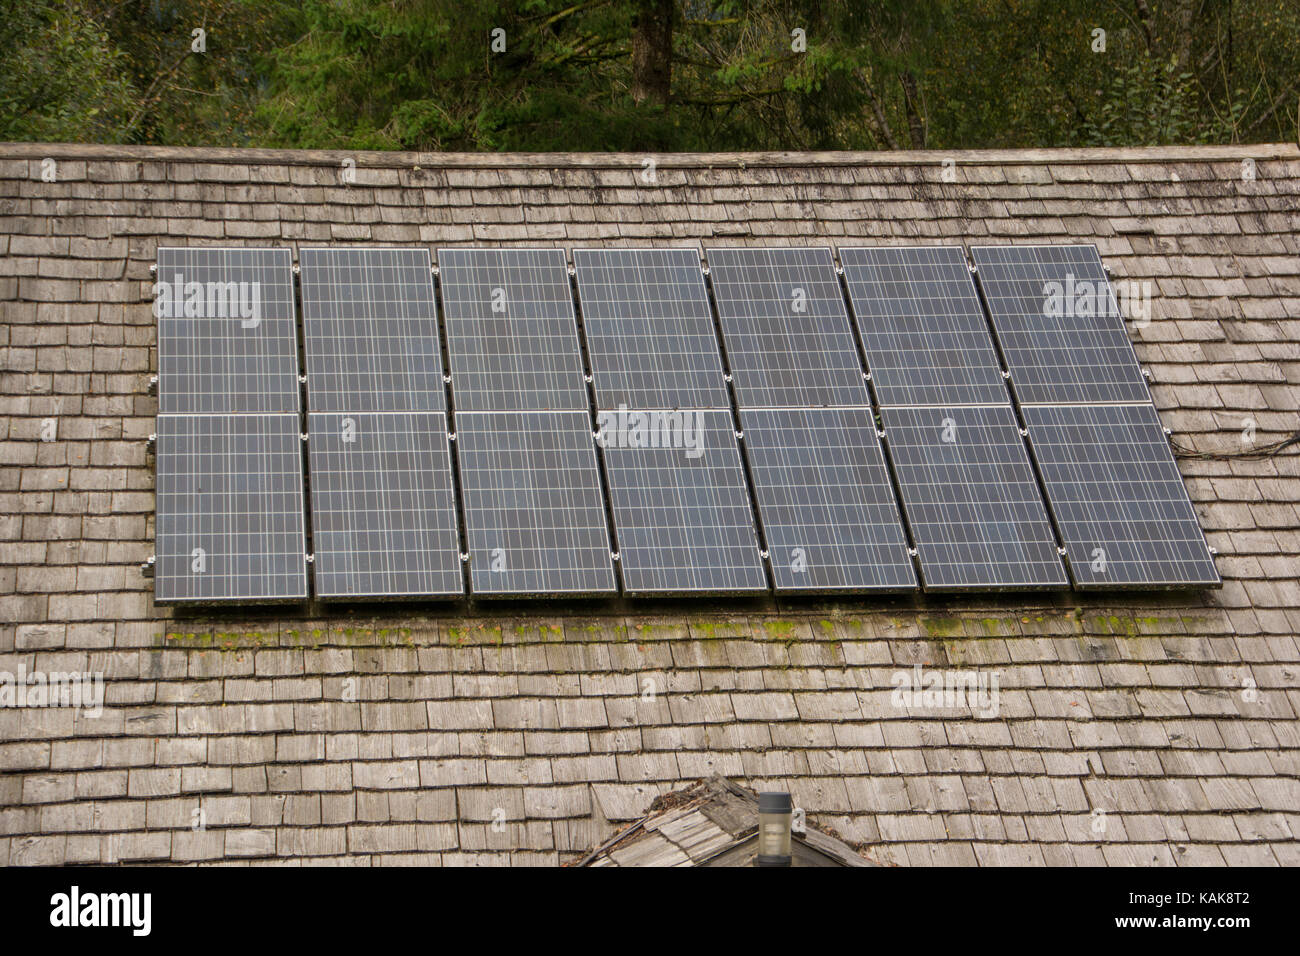 solar panels on a traditional shingled roof - Stock Image